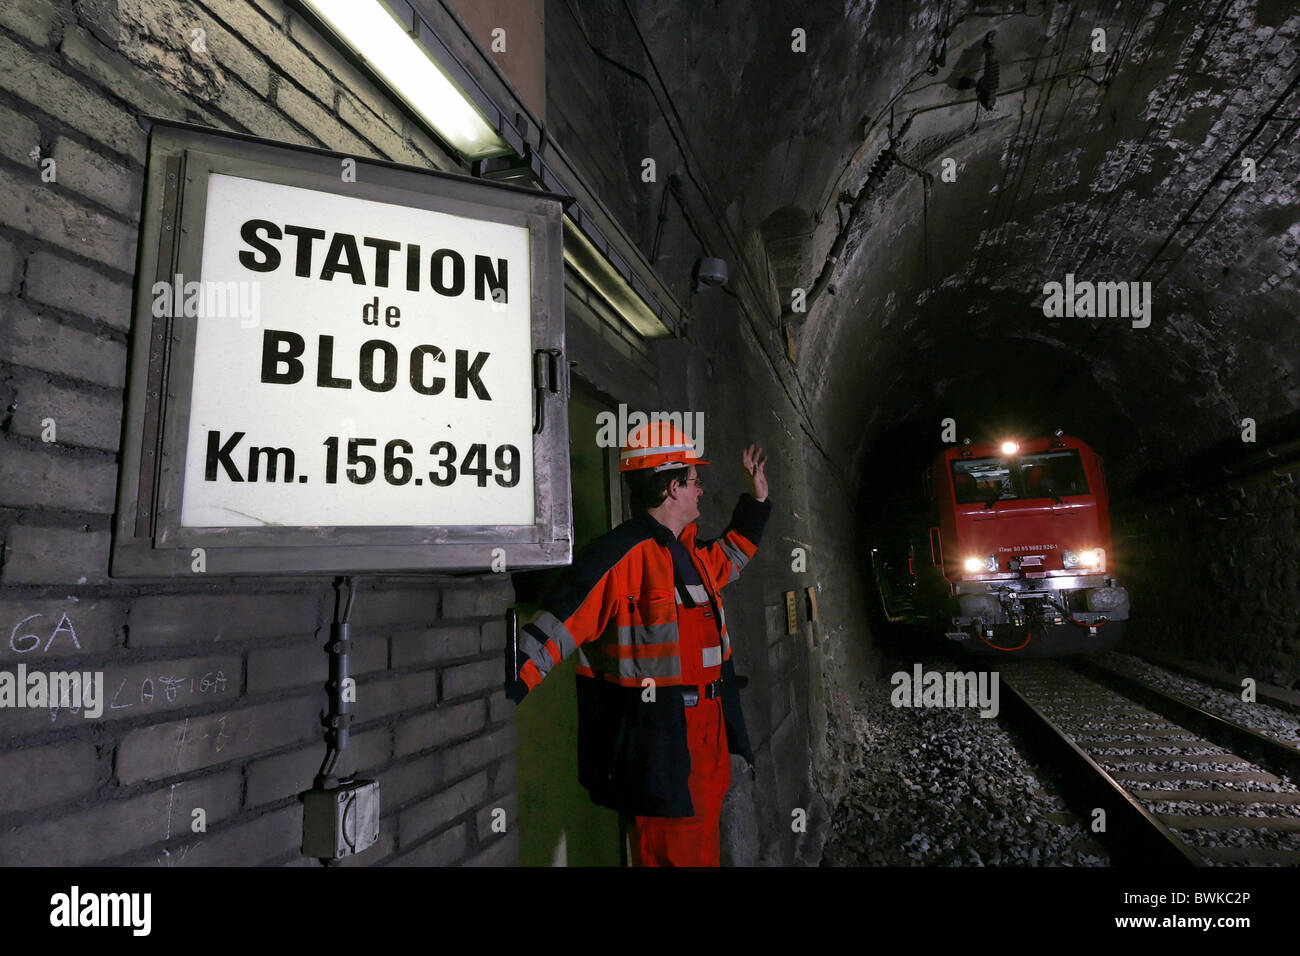 man office worker Swiss Federal Railways workers notice board sign shield Simplon Brig traveling transport - Stock Image